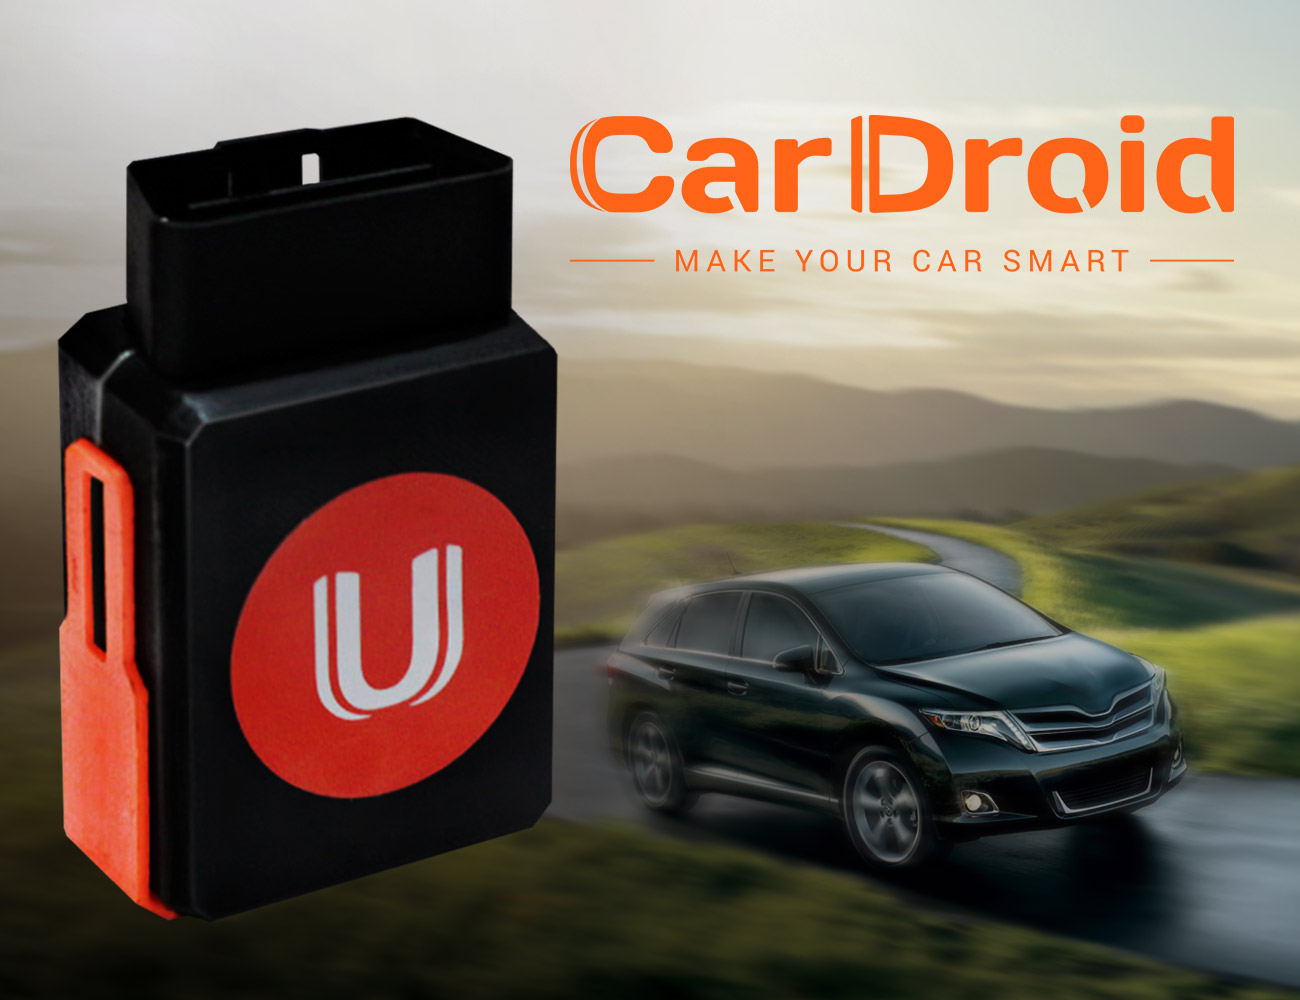 cardroid-first-android-vehicle-monitoring-device-02